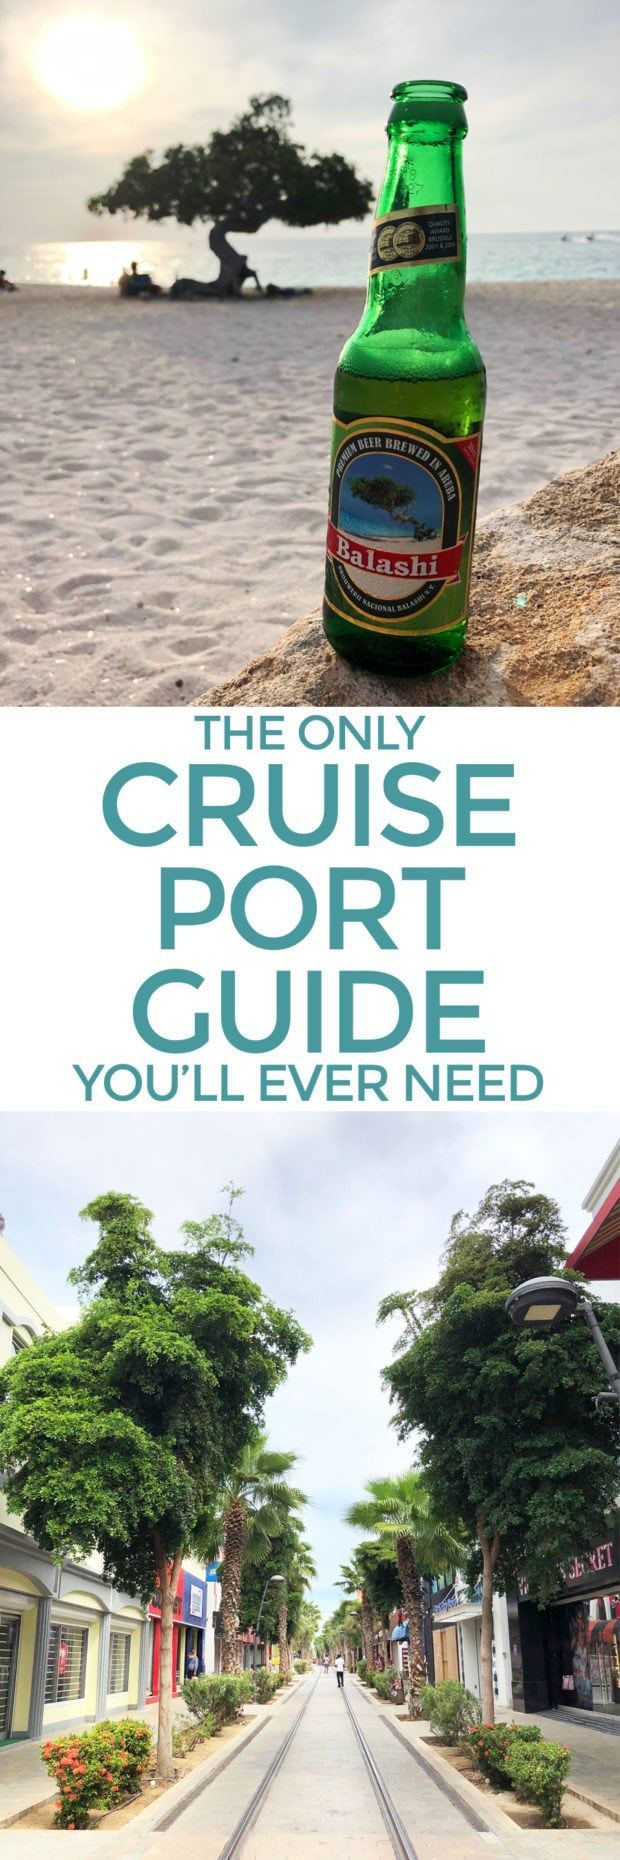 Whether you are an avid cruiser or a first timer, determining what you want out of every port is always a new, and sometimes overwhelming, experience. With so little time and so much to do, I put together The Only Cruise Port Guide You'll Ever Need to make sure you can make the most out of every port - no matter where you are in the world! @carnival   cakenknife.com